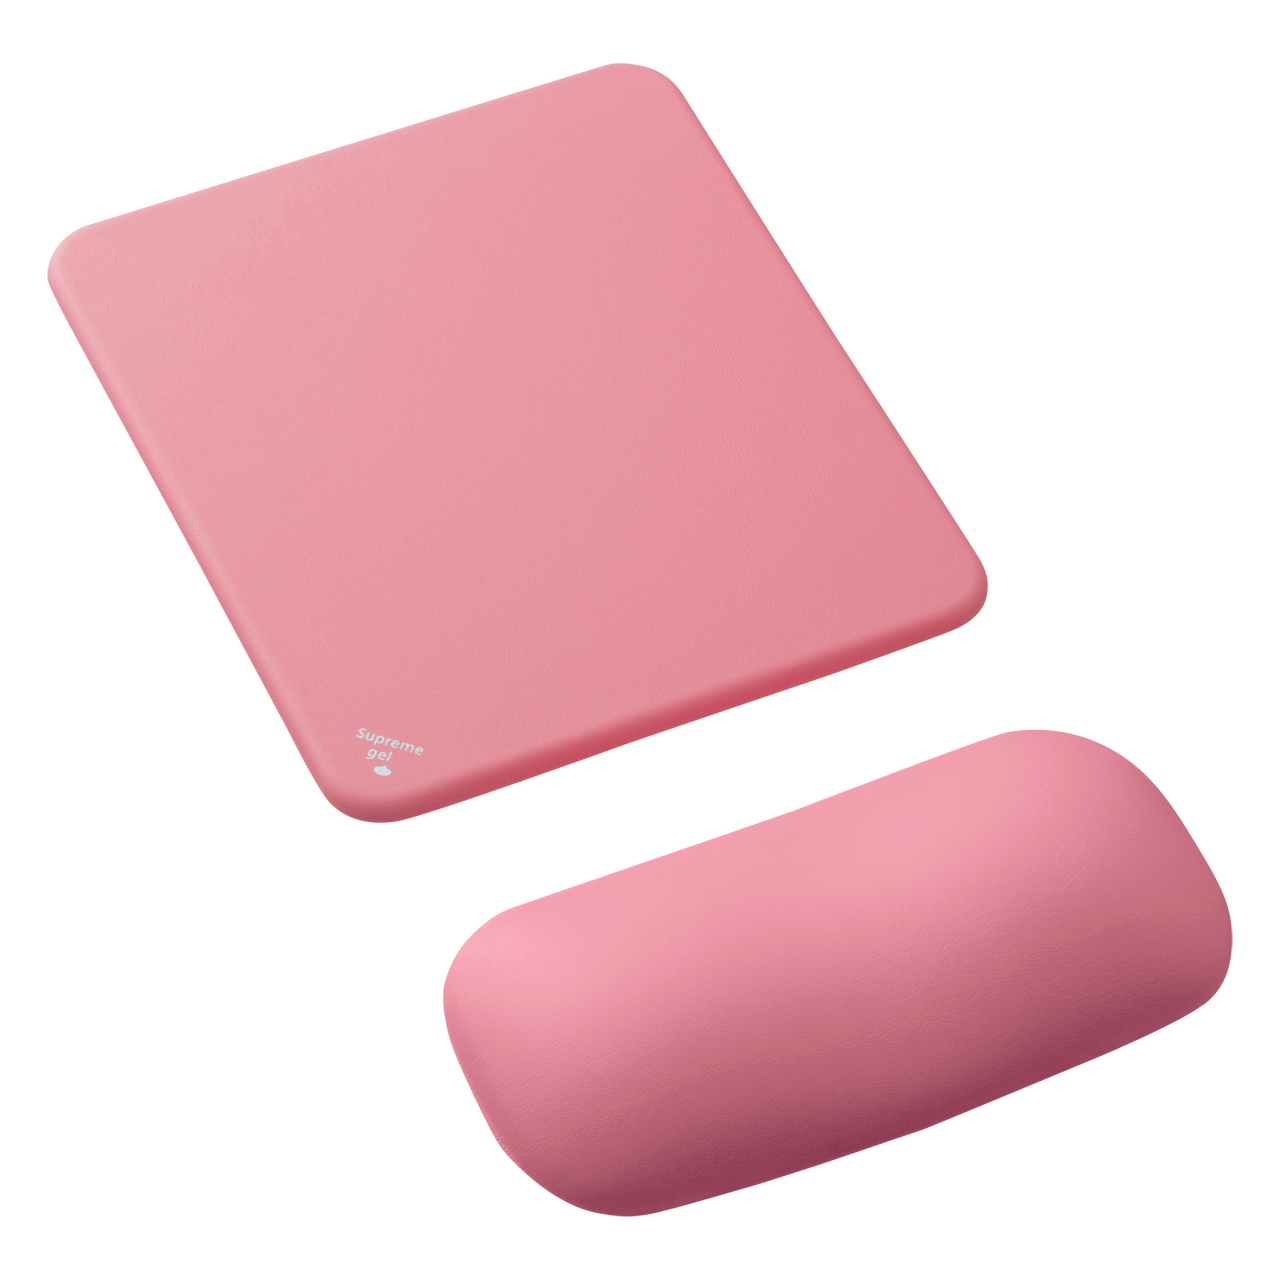 Japan SANWA ergonomic mouse pad wrist pad wrist pad silicone hand rest lovely healthy wash